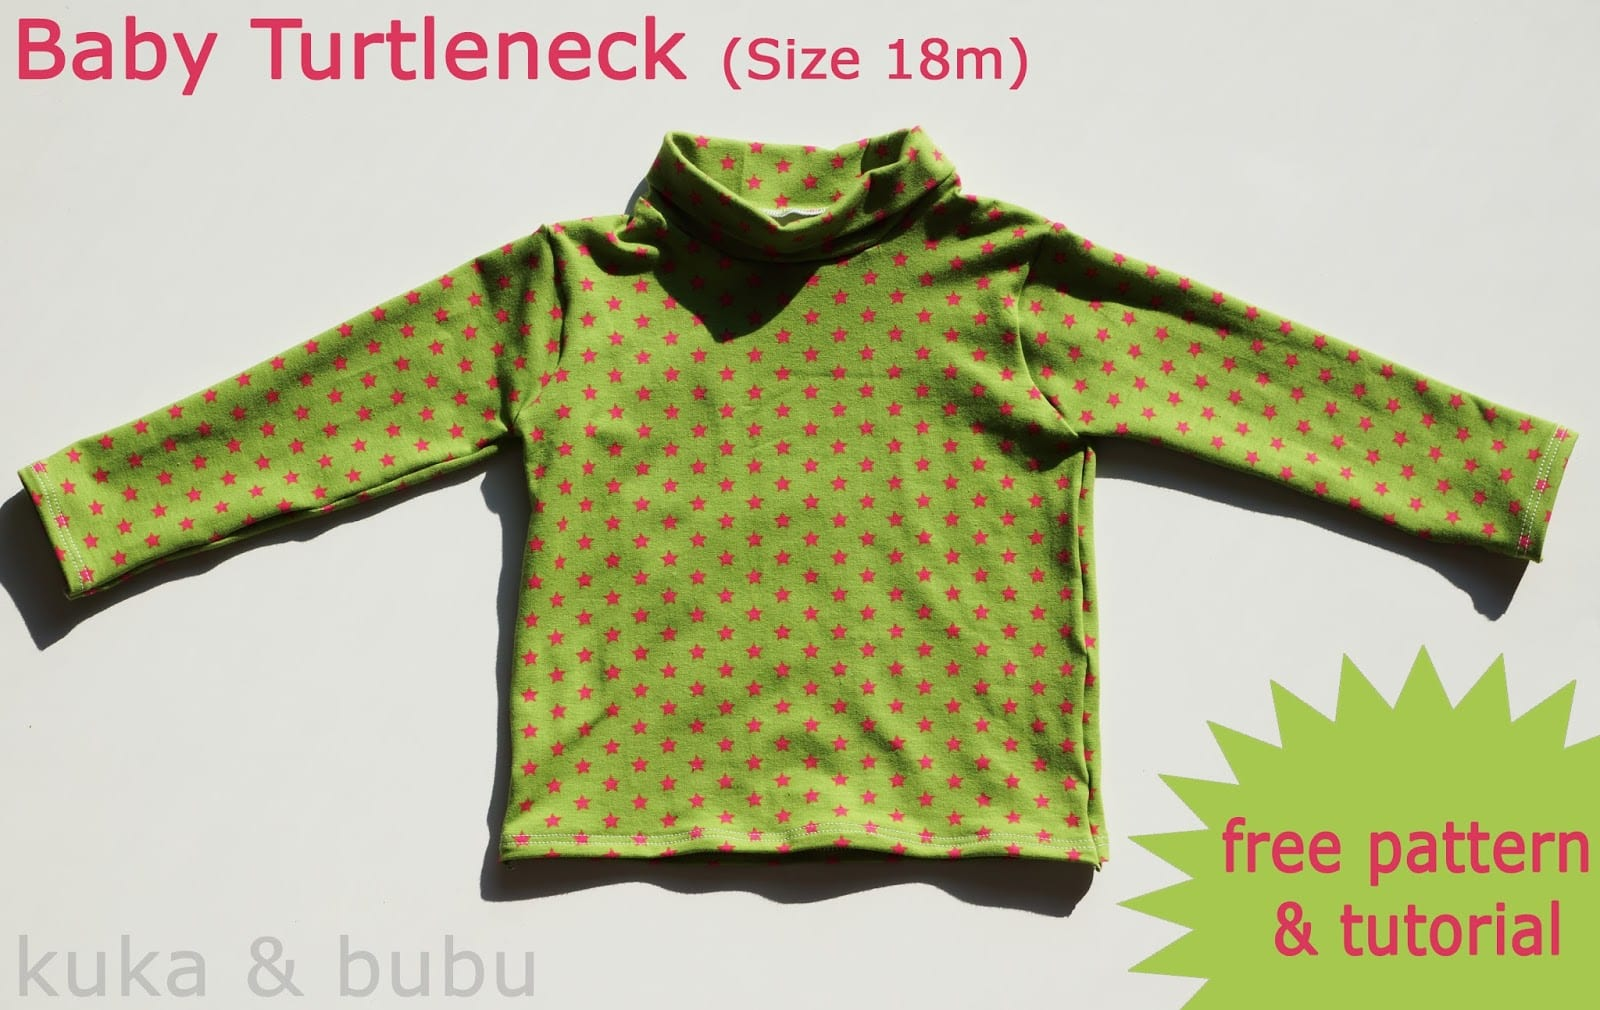 Turtleneck for babies pattern and tutorial